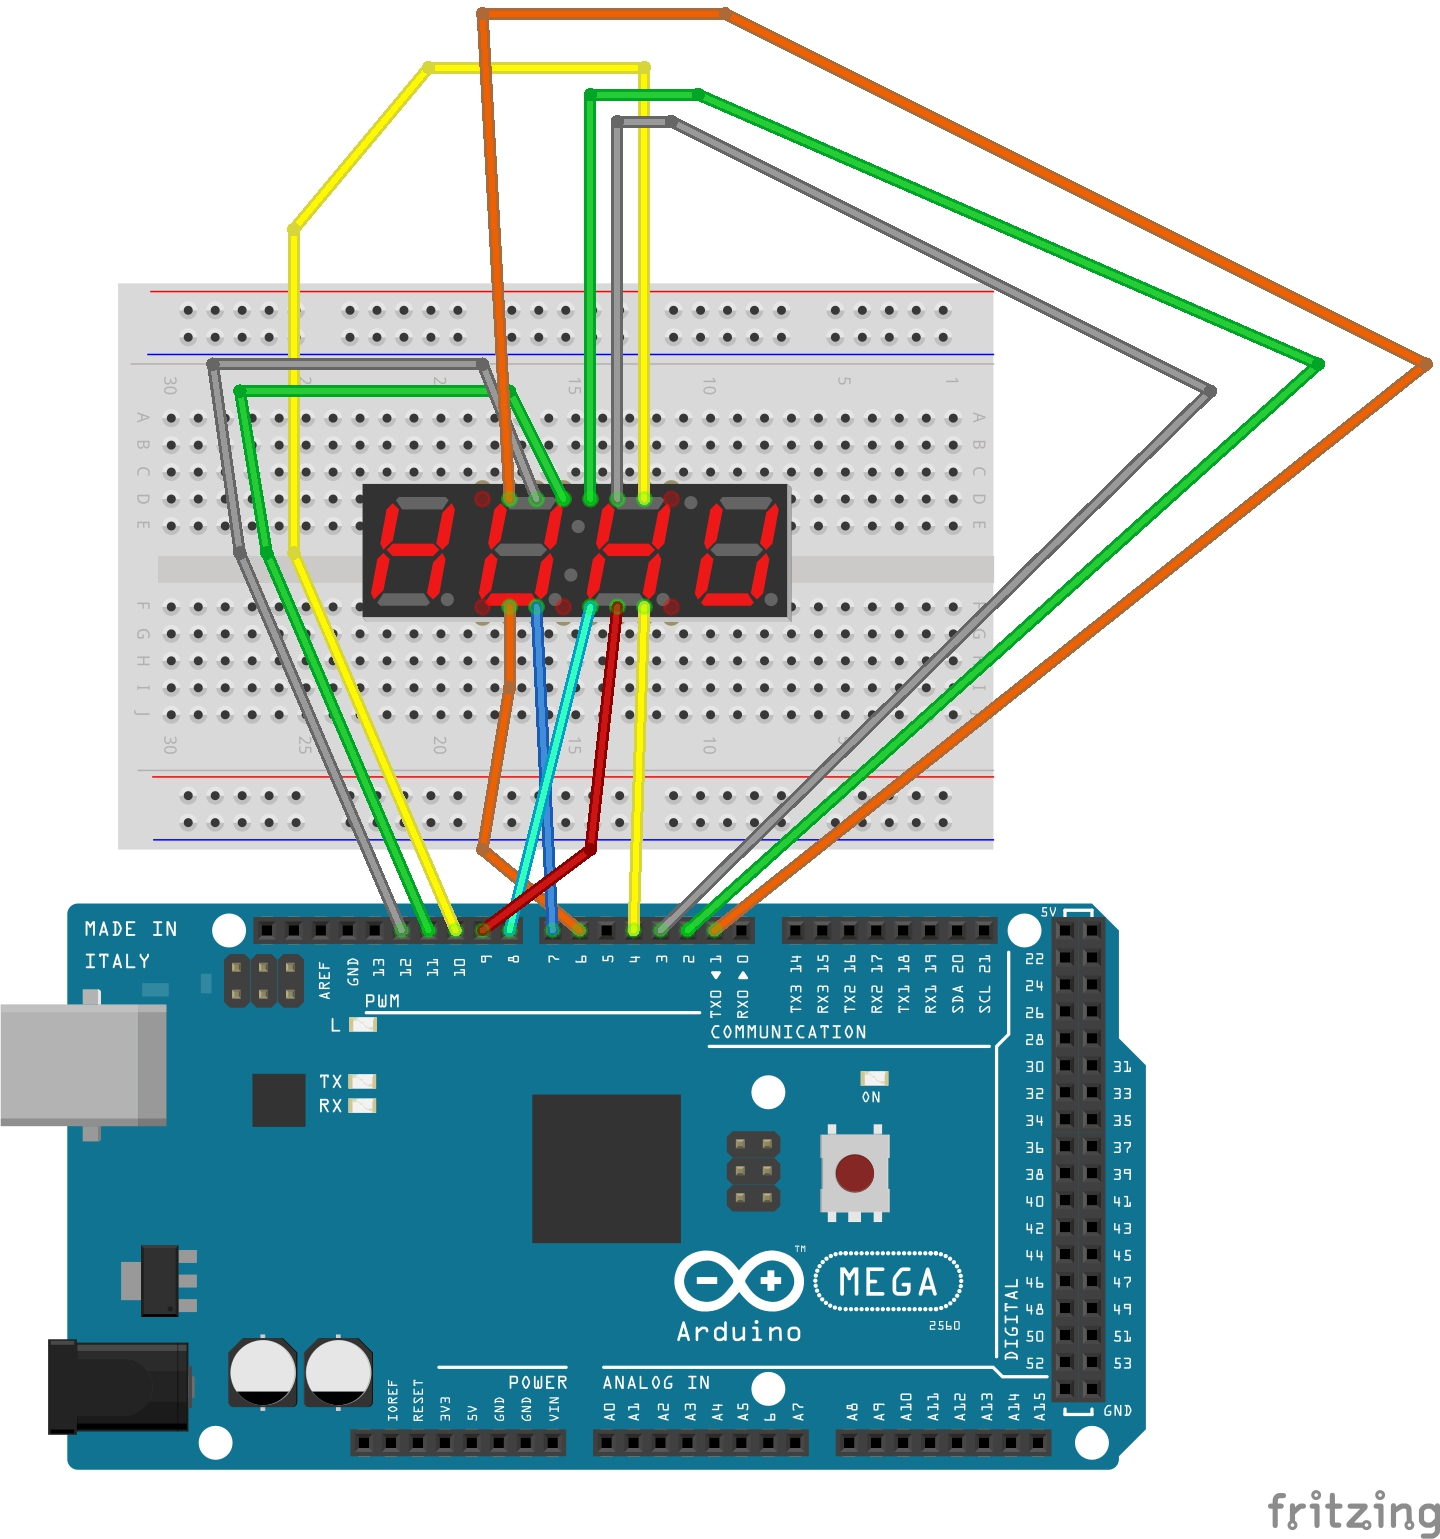 Arduino Countdown Timer - ster.io on 4 pin fuse, 4 pin connector, 4 pin cable, and 4 pin input diagram, 4 pin plug, 4 pin switch, 4 pin harness diagram, 4 pin wiring chart, 4 pin relay, 4 pin trailer harness, 4 pin trailer diagram, 4 pin voltage, 4 pin round trailer wiring, vga pinout diagram, 110cc wire harness diagram, 4 pin socket diagram, 4 pin fan diagram, s-video pin diagram, 4 pin wire harness, 4 pin sensor diagram,